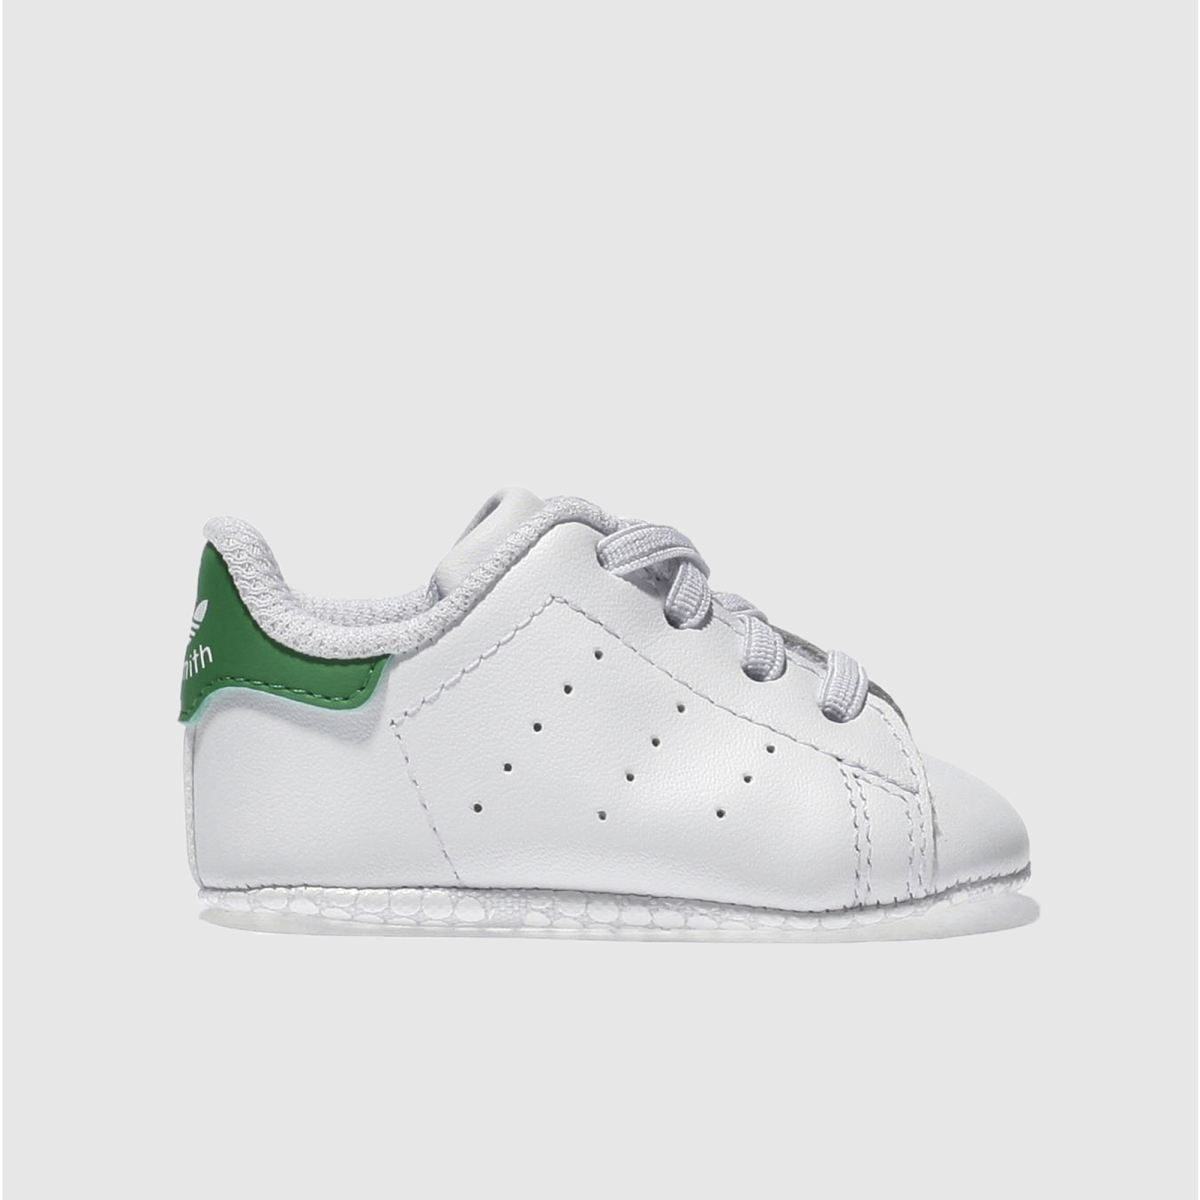 Stan Smith Mint Green